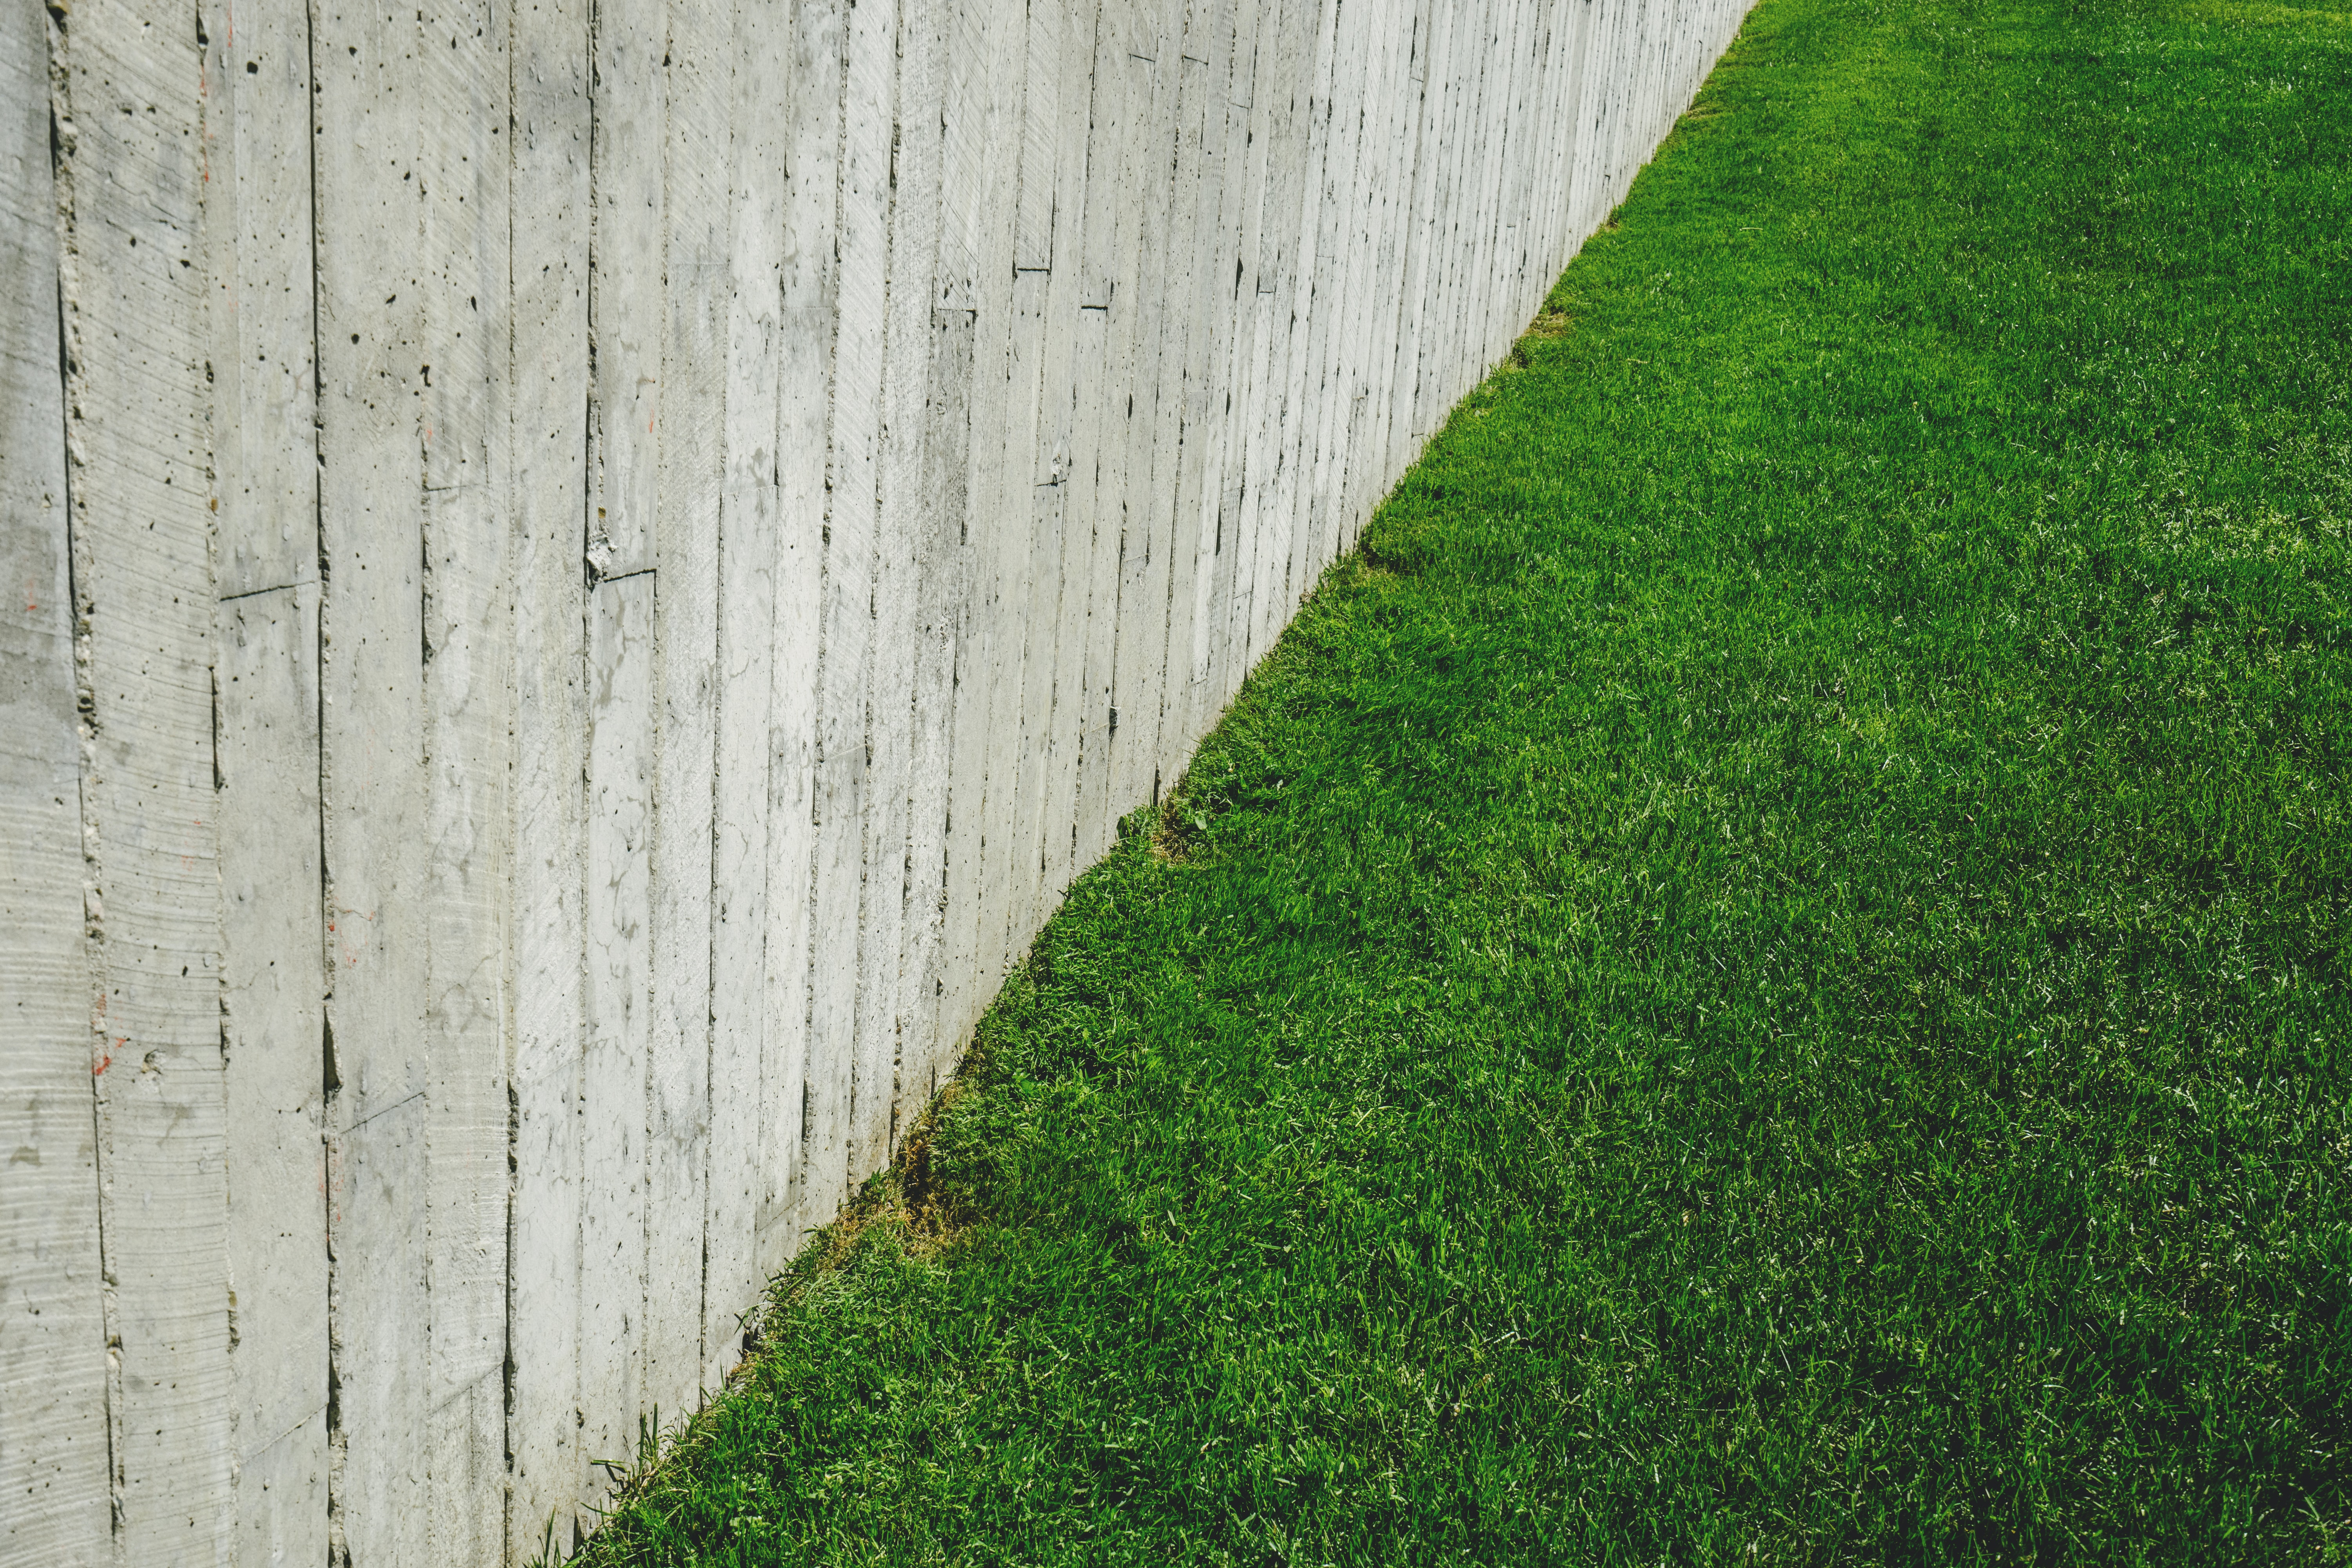 A fence and green grass